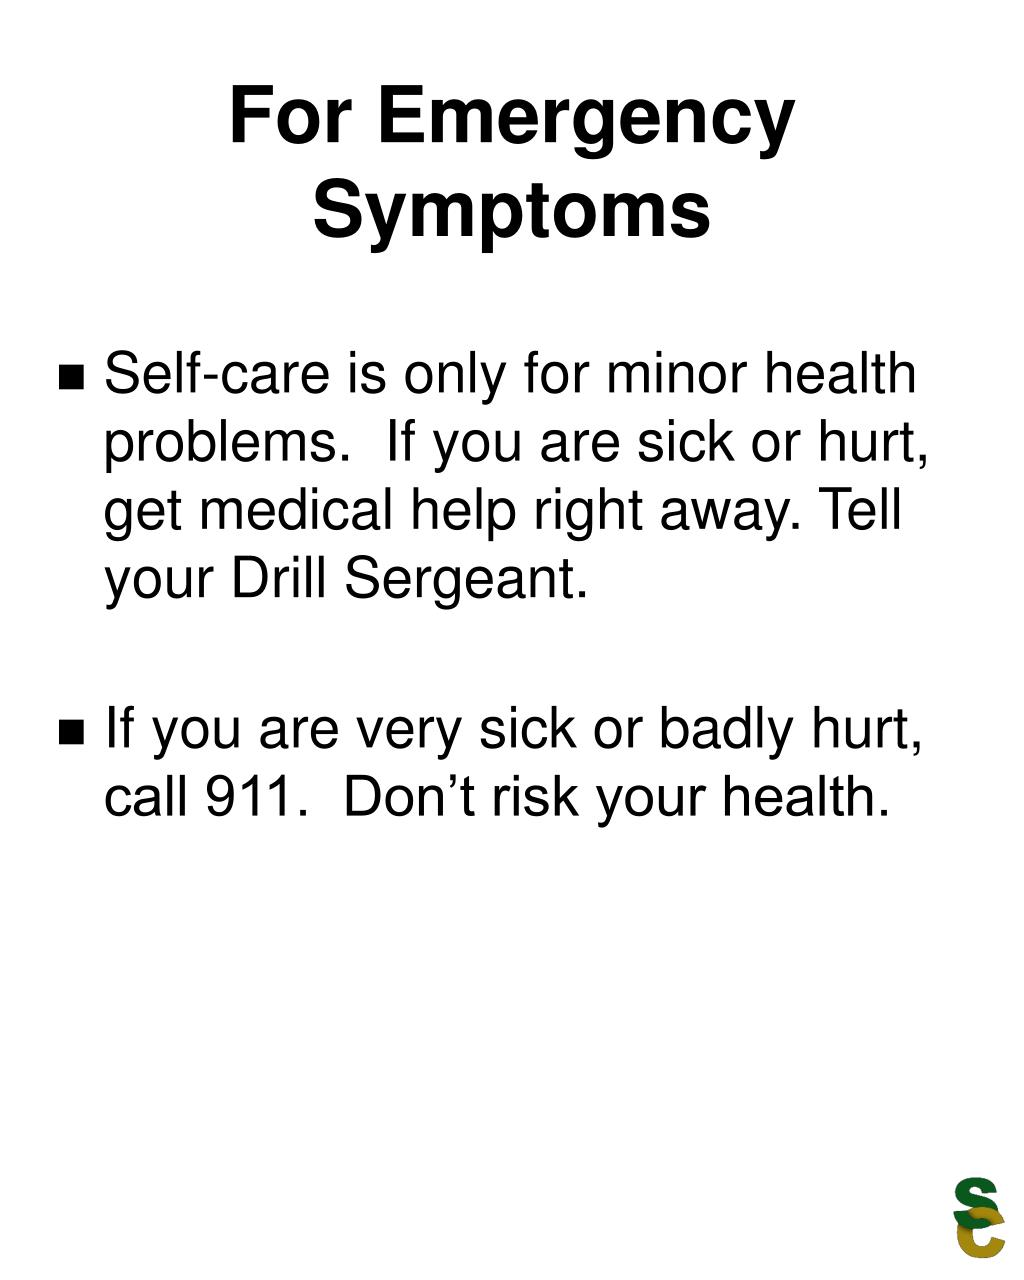 For Emergency Symptoms